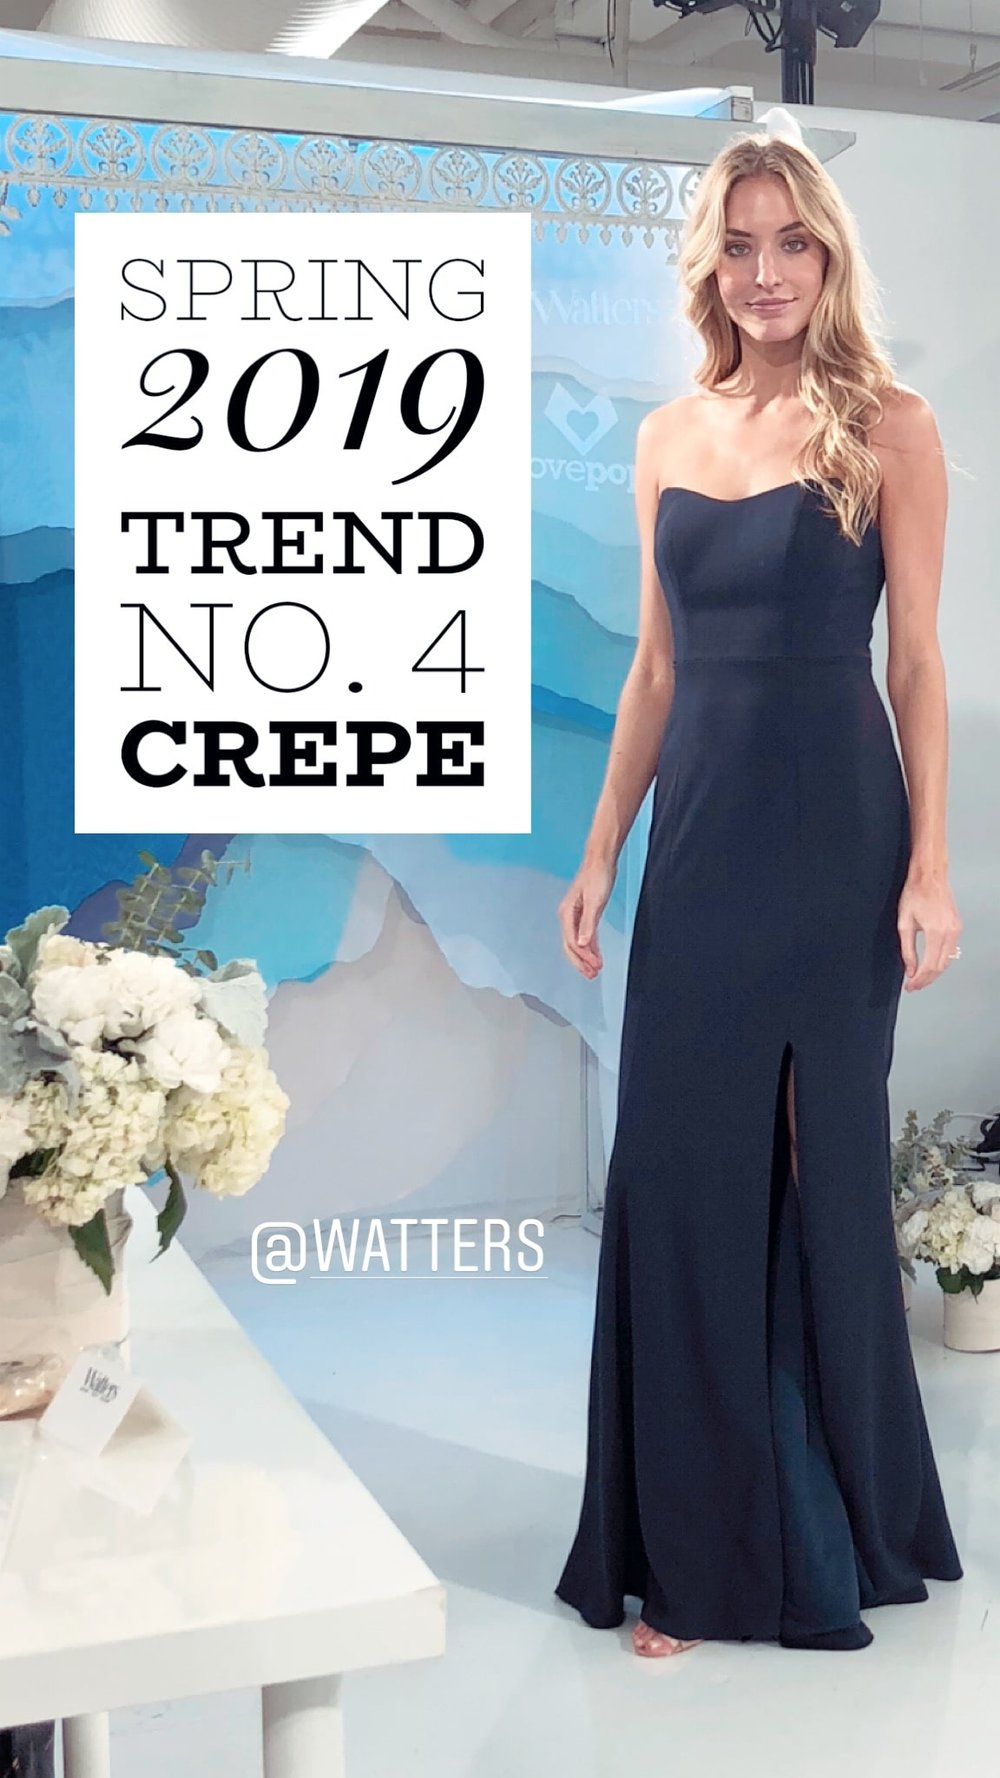 Crepe continues to dominate Bridesmaid style